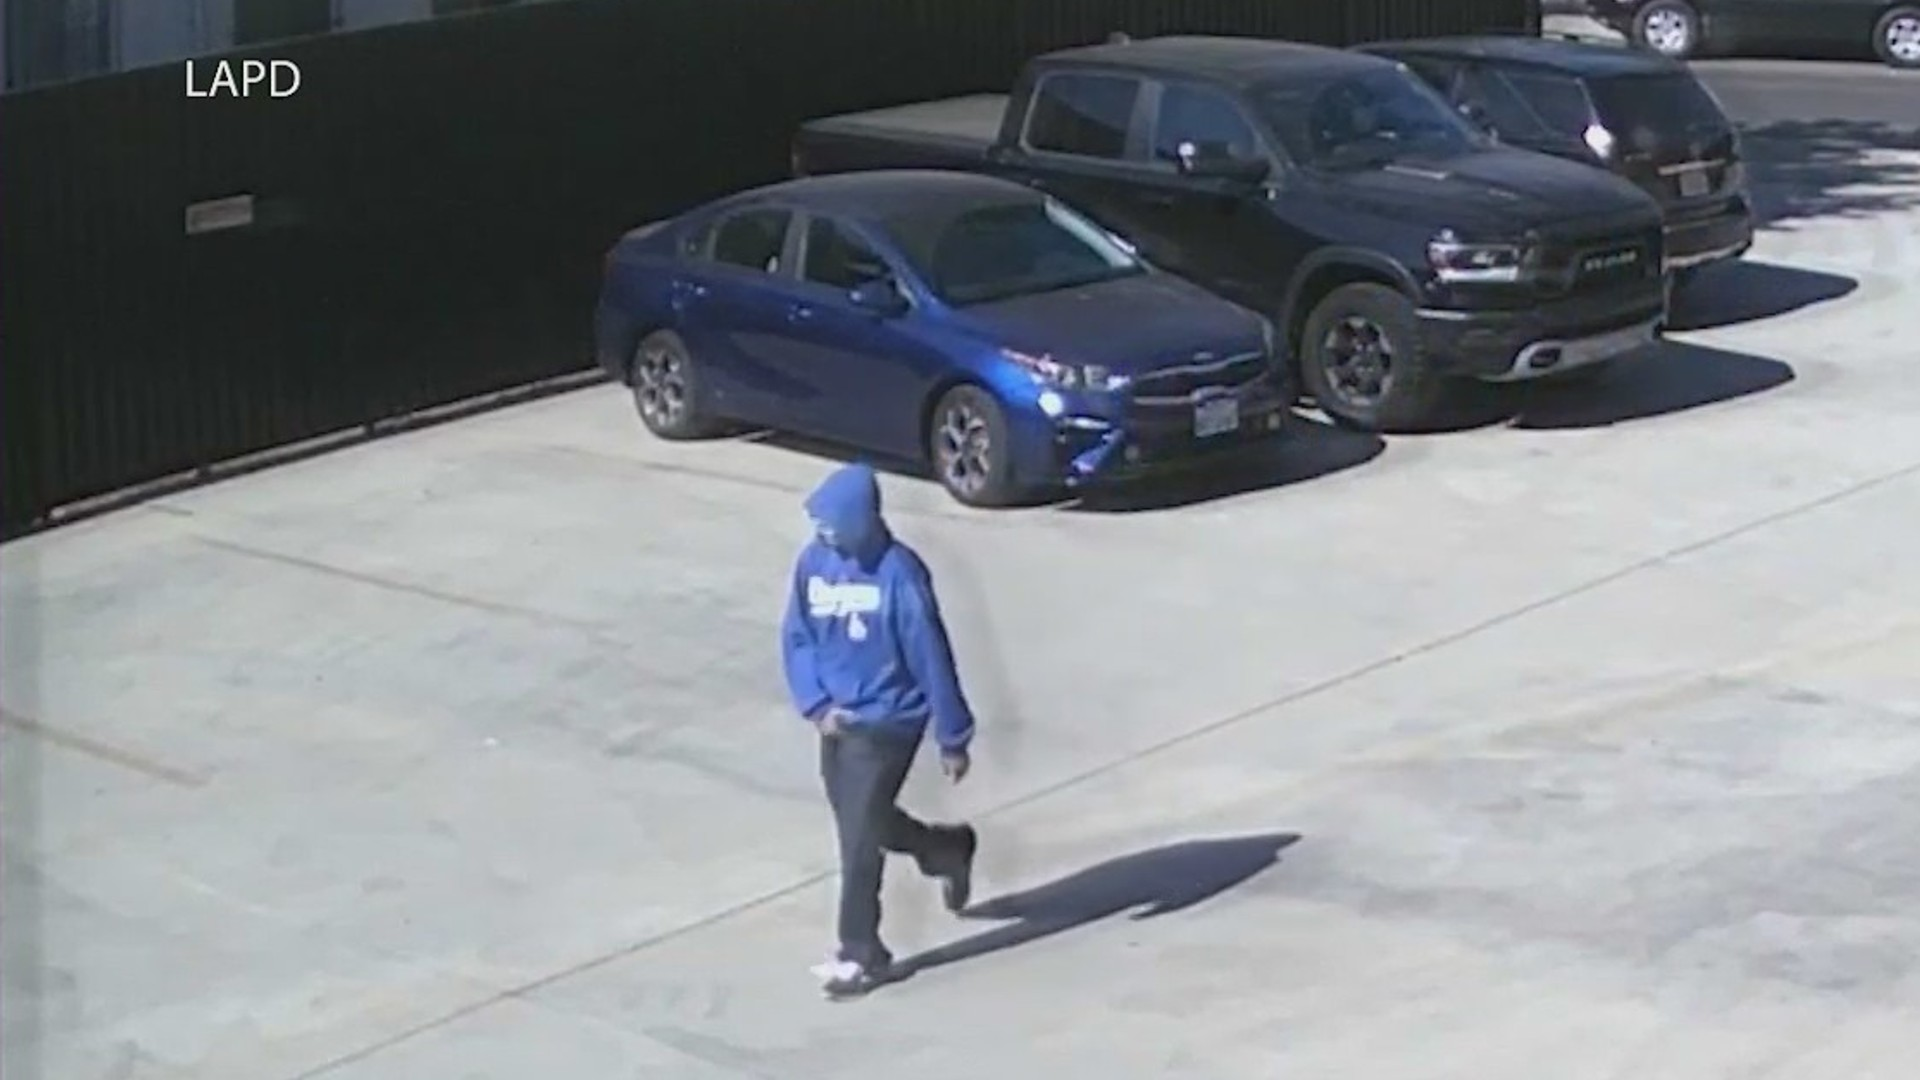 Los Angeles police released surveillance video of the suspected killer during a news conference on Sept. 28, 2021.